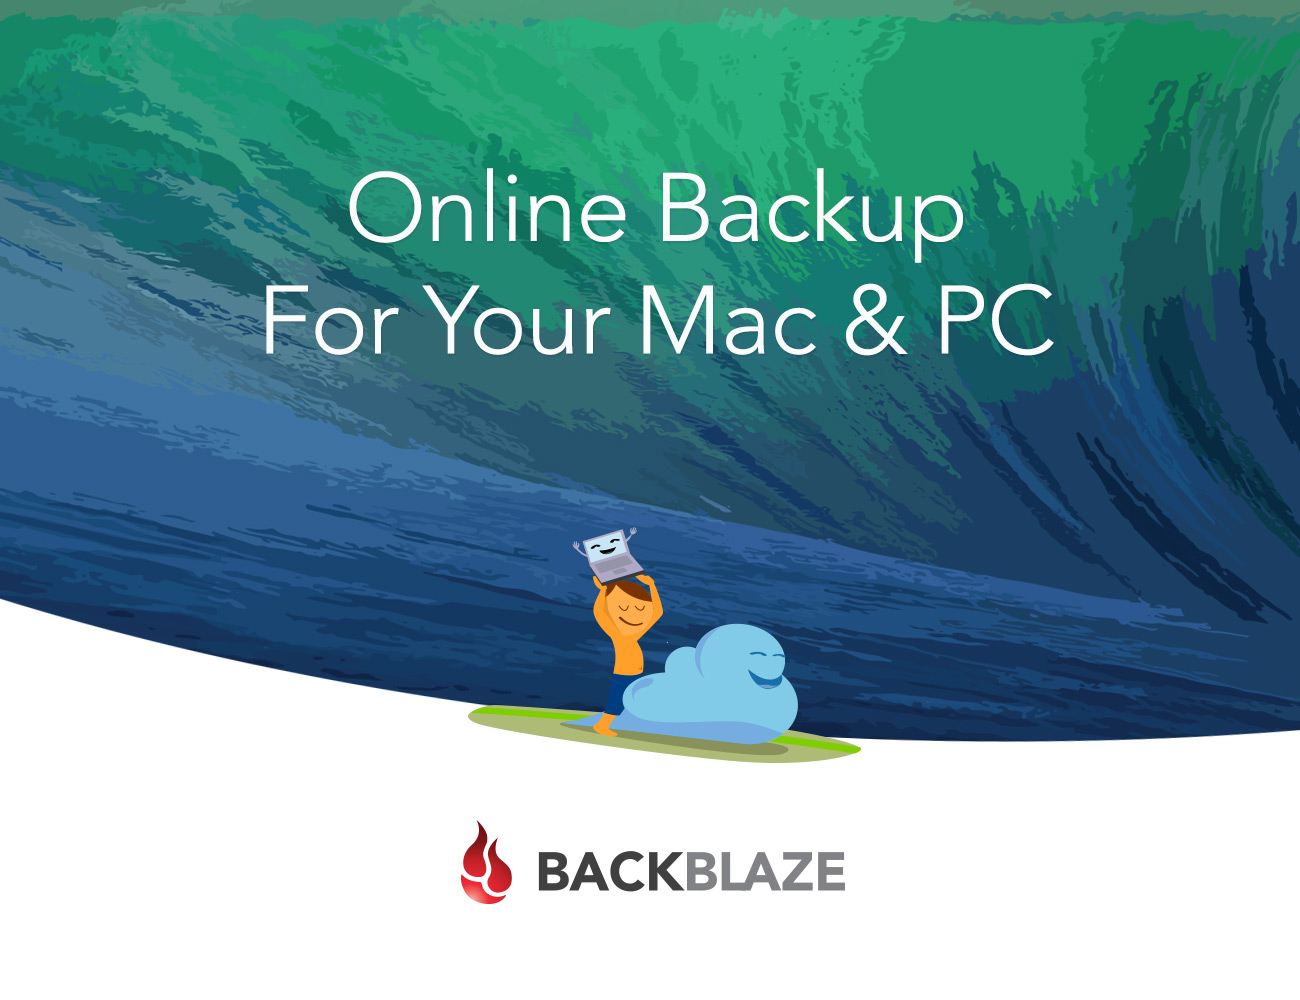 Featured Sponsor: Backblaze